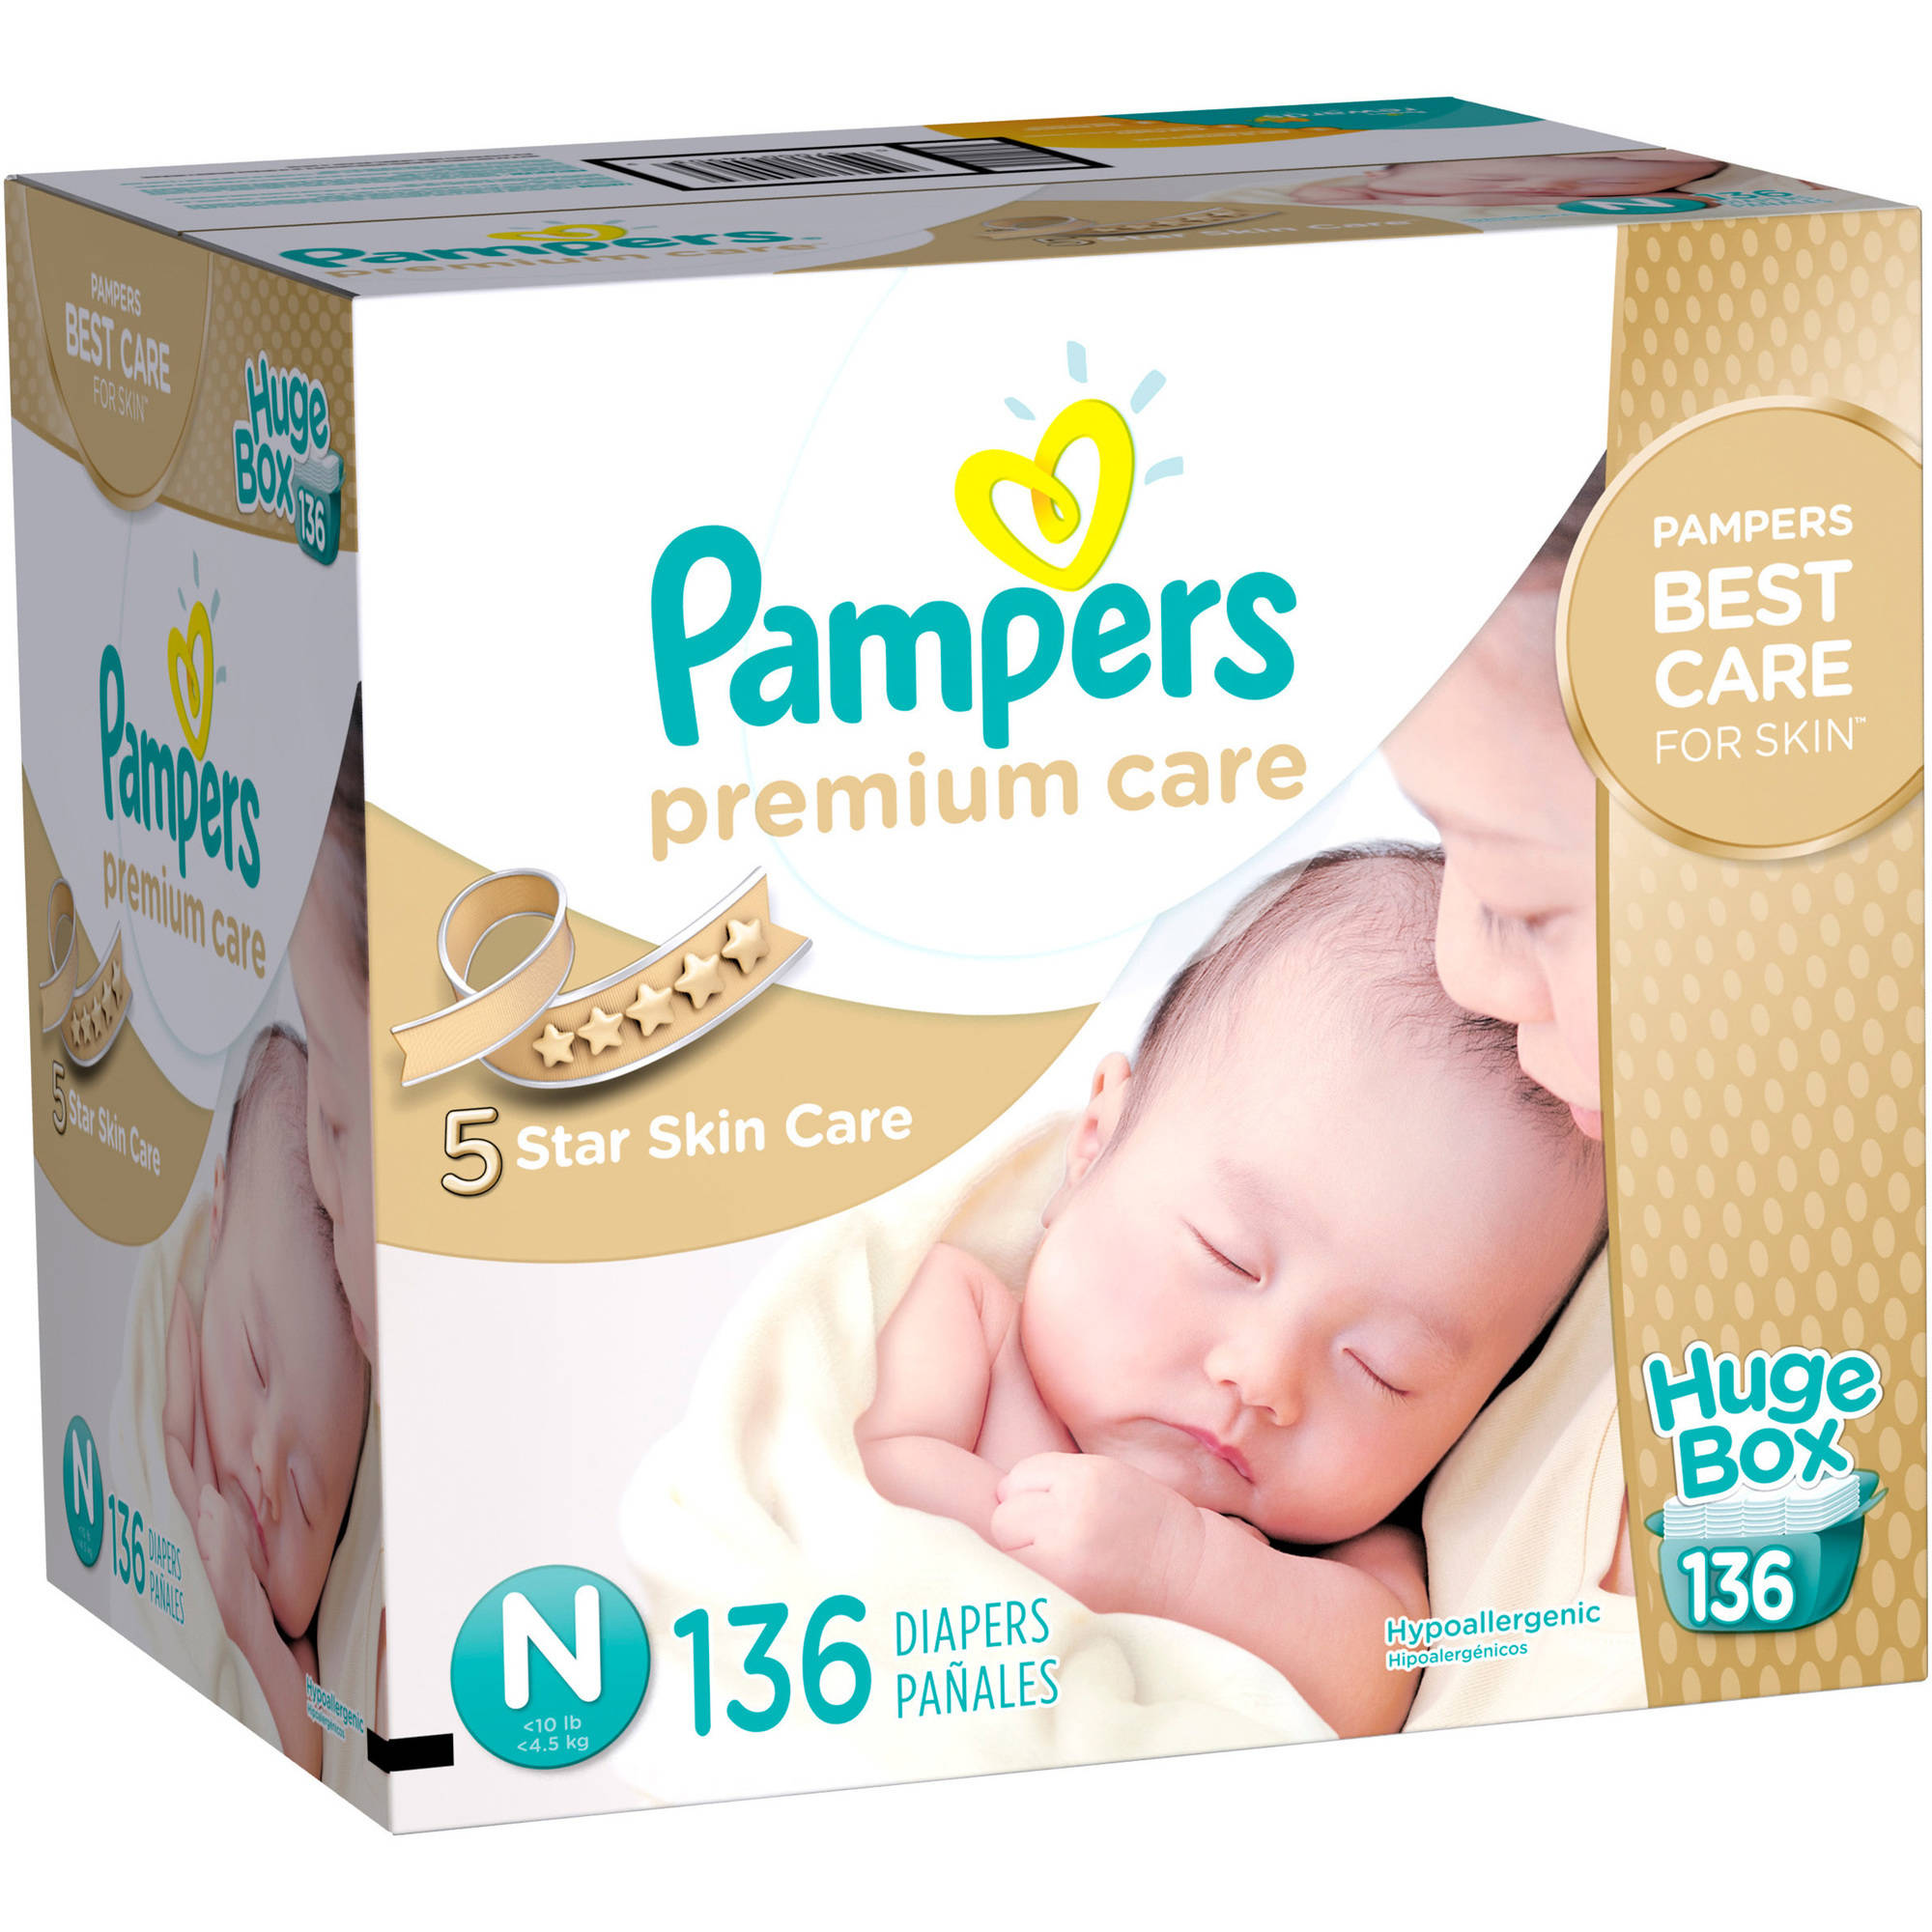 Pampers Premium Care Disposable Diapers, Huge Box, (Choose Your Size)